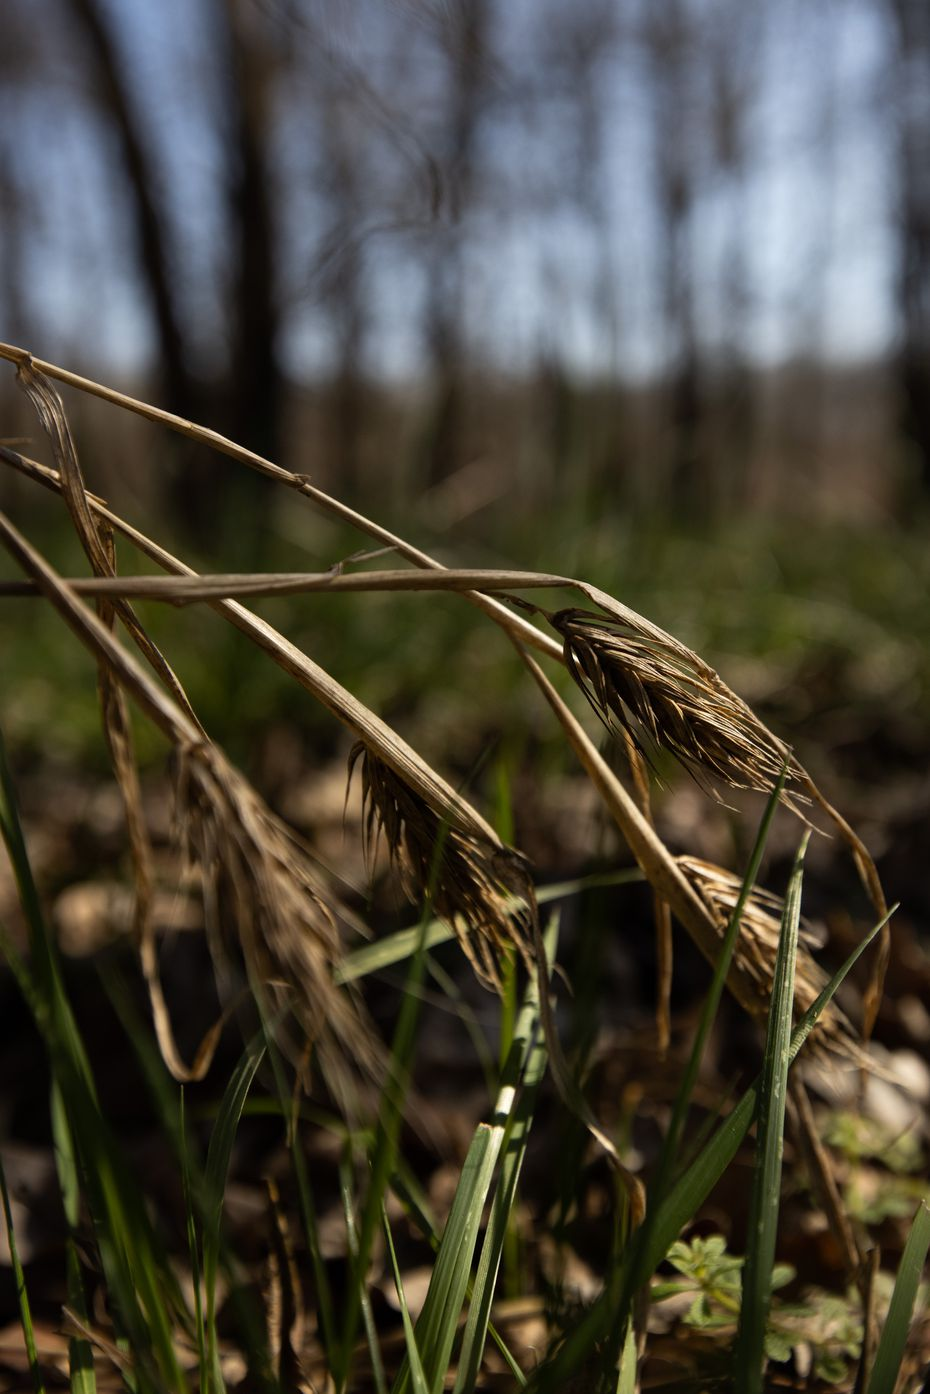 Virginia wild rye, sometimes referred to as Texas wheat, is among the many grasses in the Great Trinity Forest that Ben Sandifer fears will suffer if the city begins cutting down green ash trees.